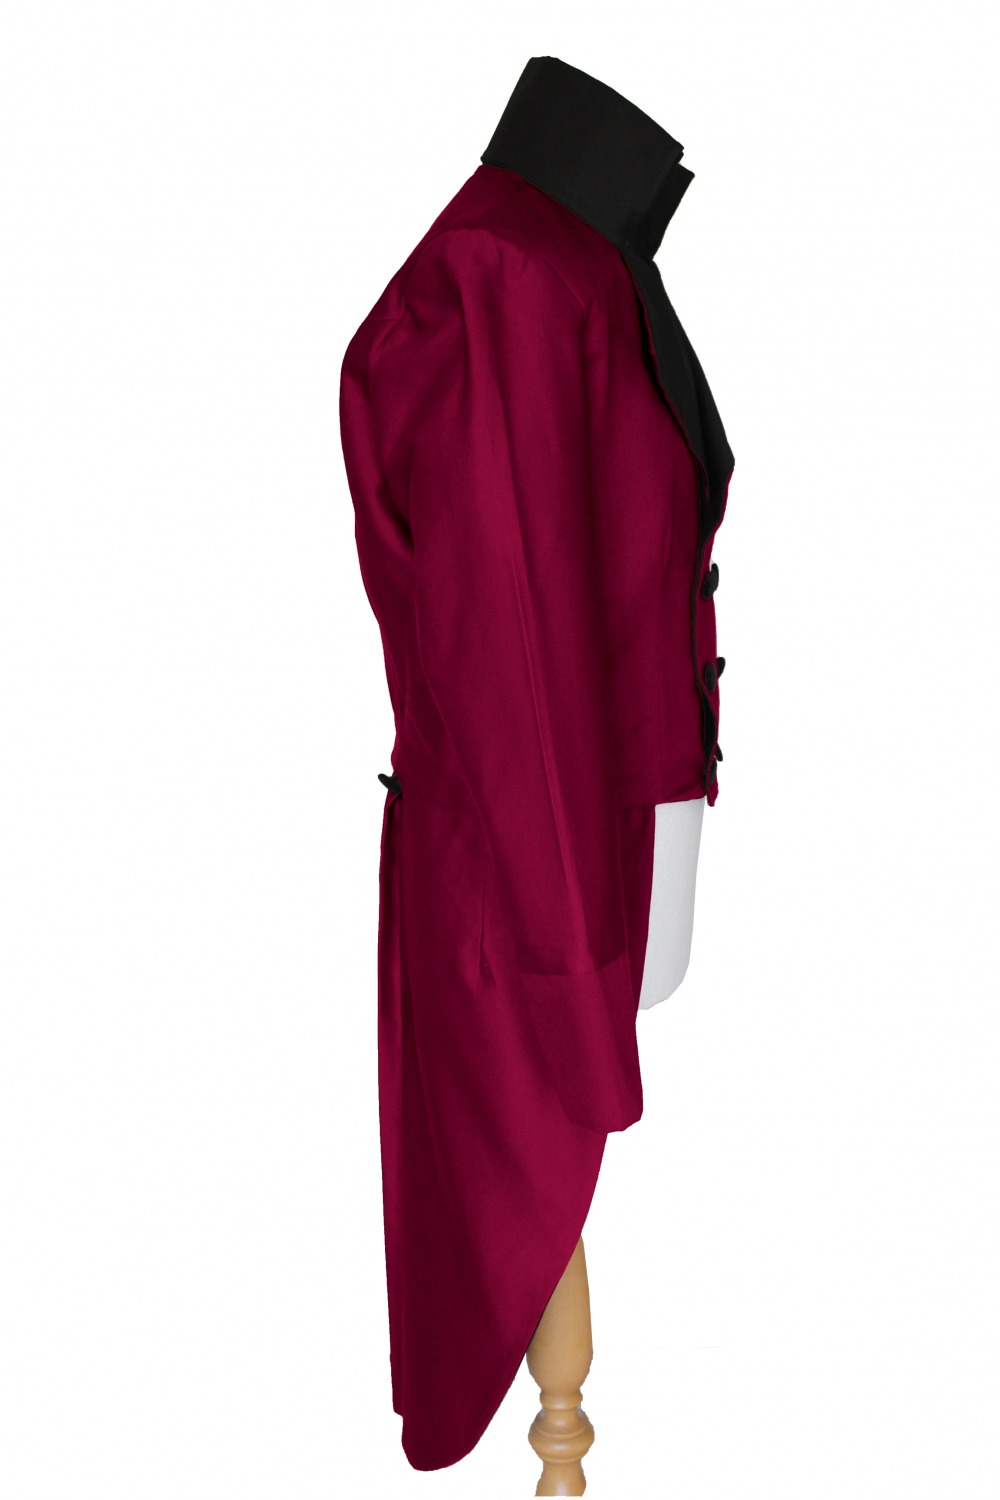 FOR SALE Made To Order Men's Handmade Deluxe Mr.Darcy Regency Victorian Tailcoat Purchase Only S, M, L, XL  Image